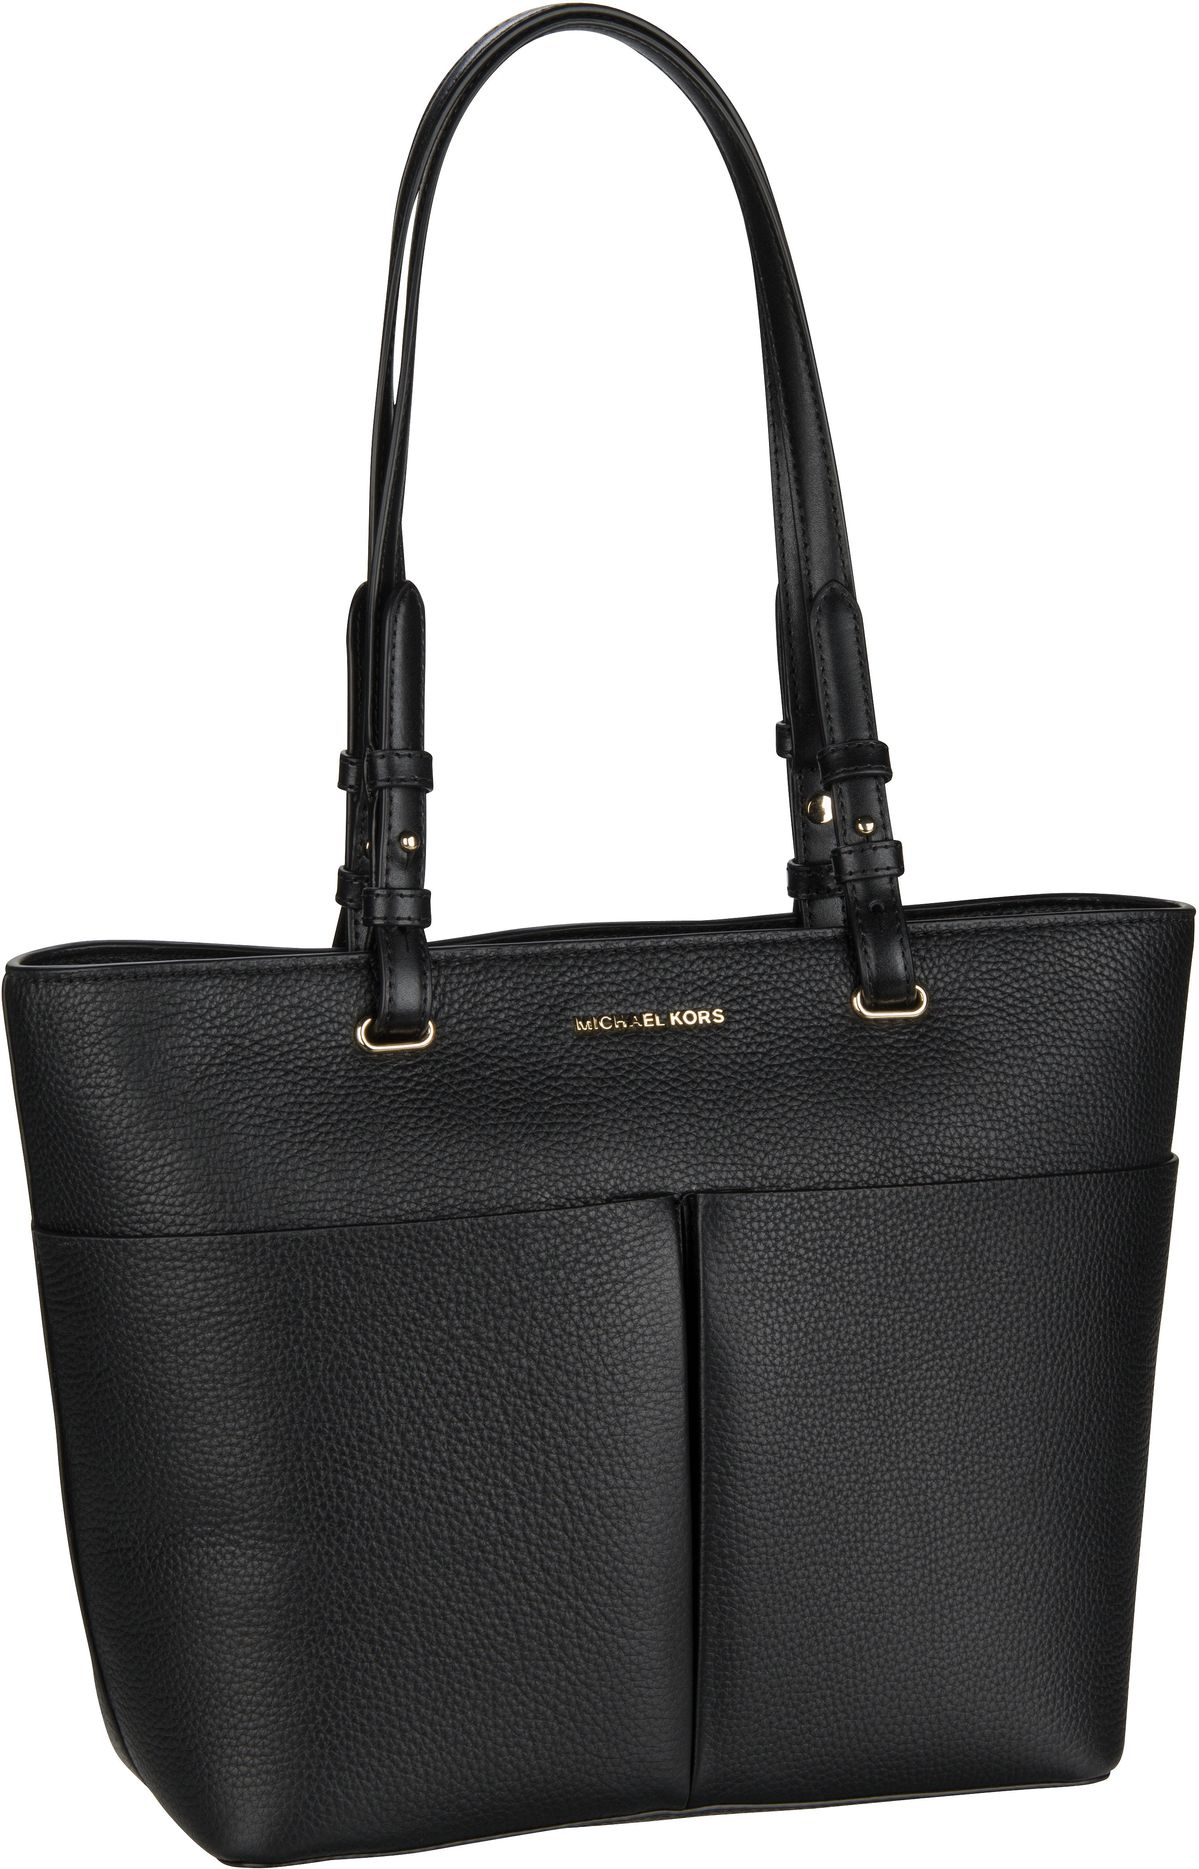 Michael Kors Handtasche Bedford Medium TZ Pocket Tote Black/Black